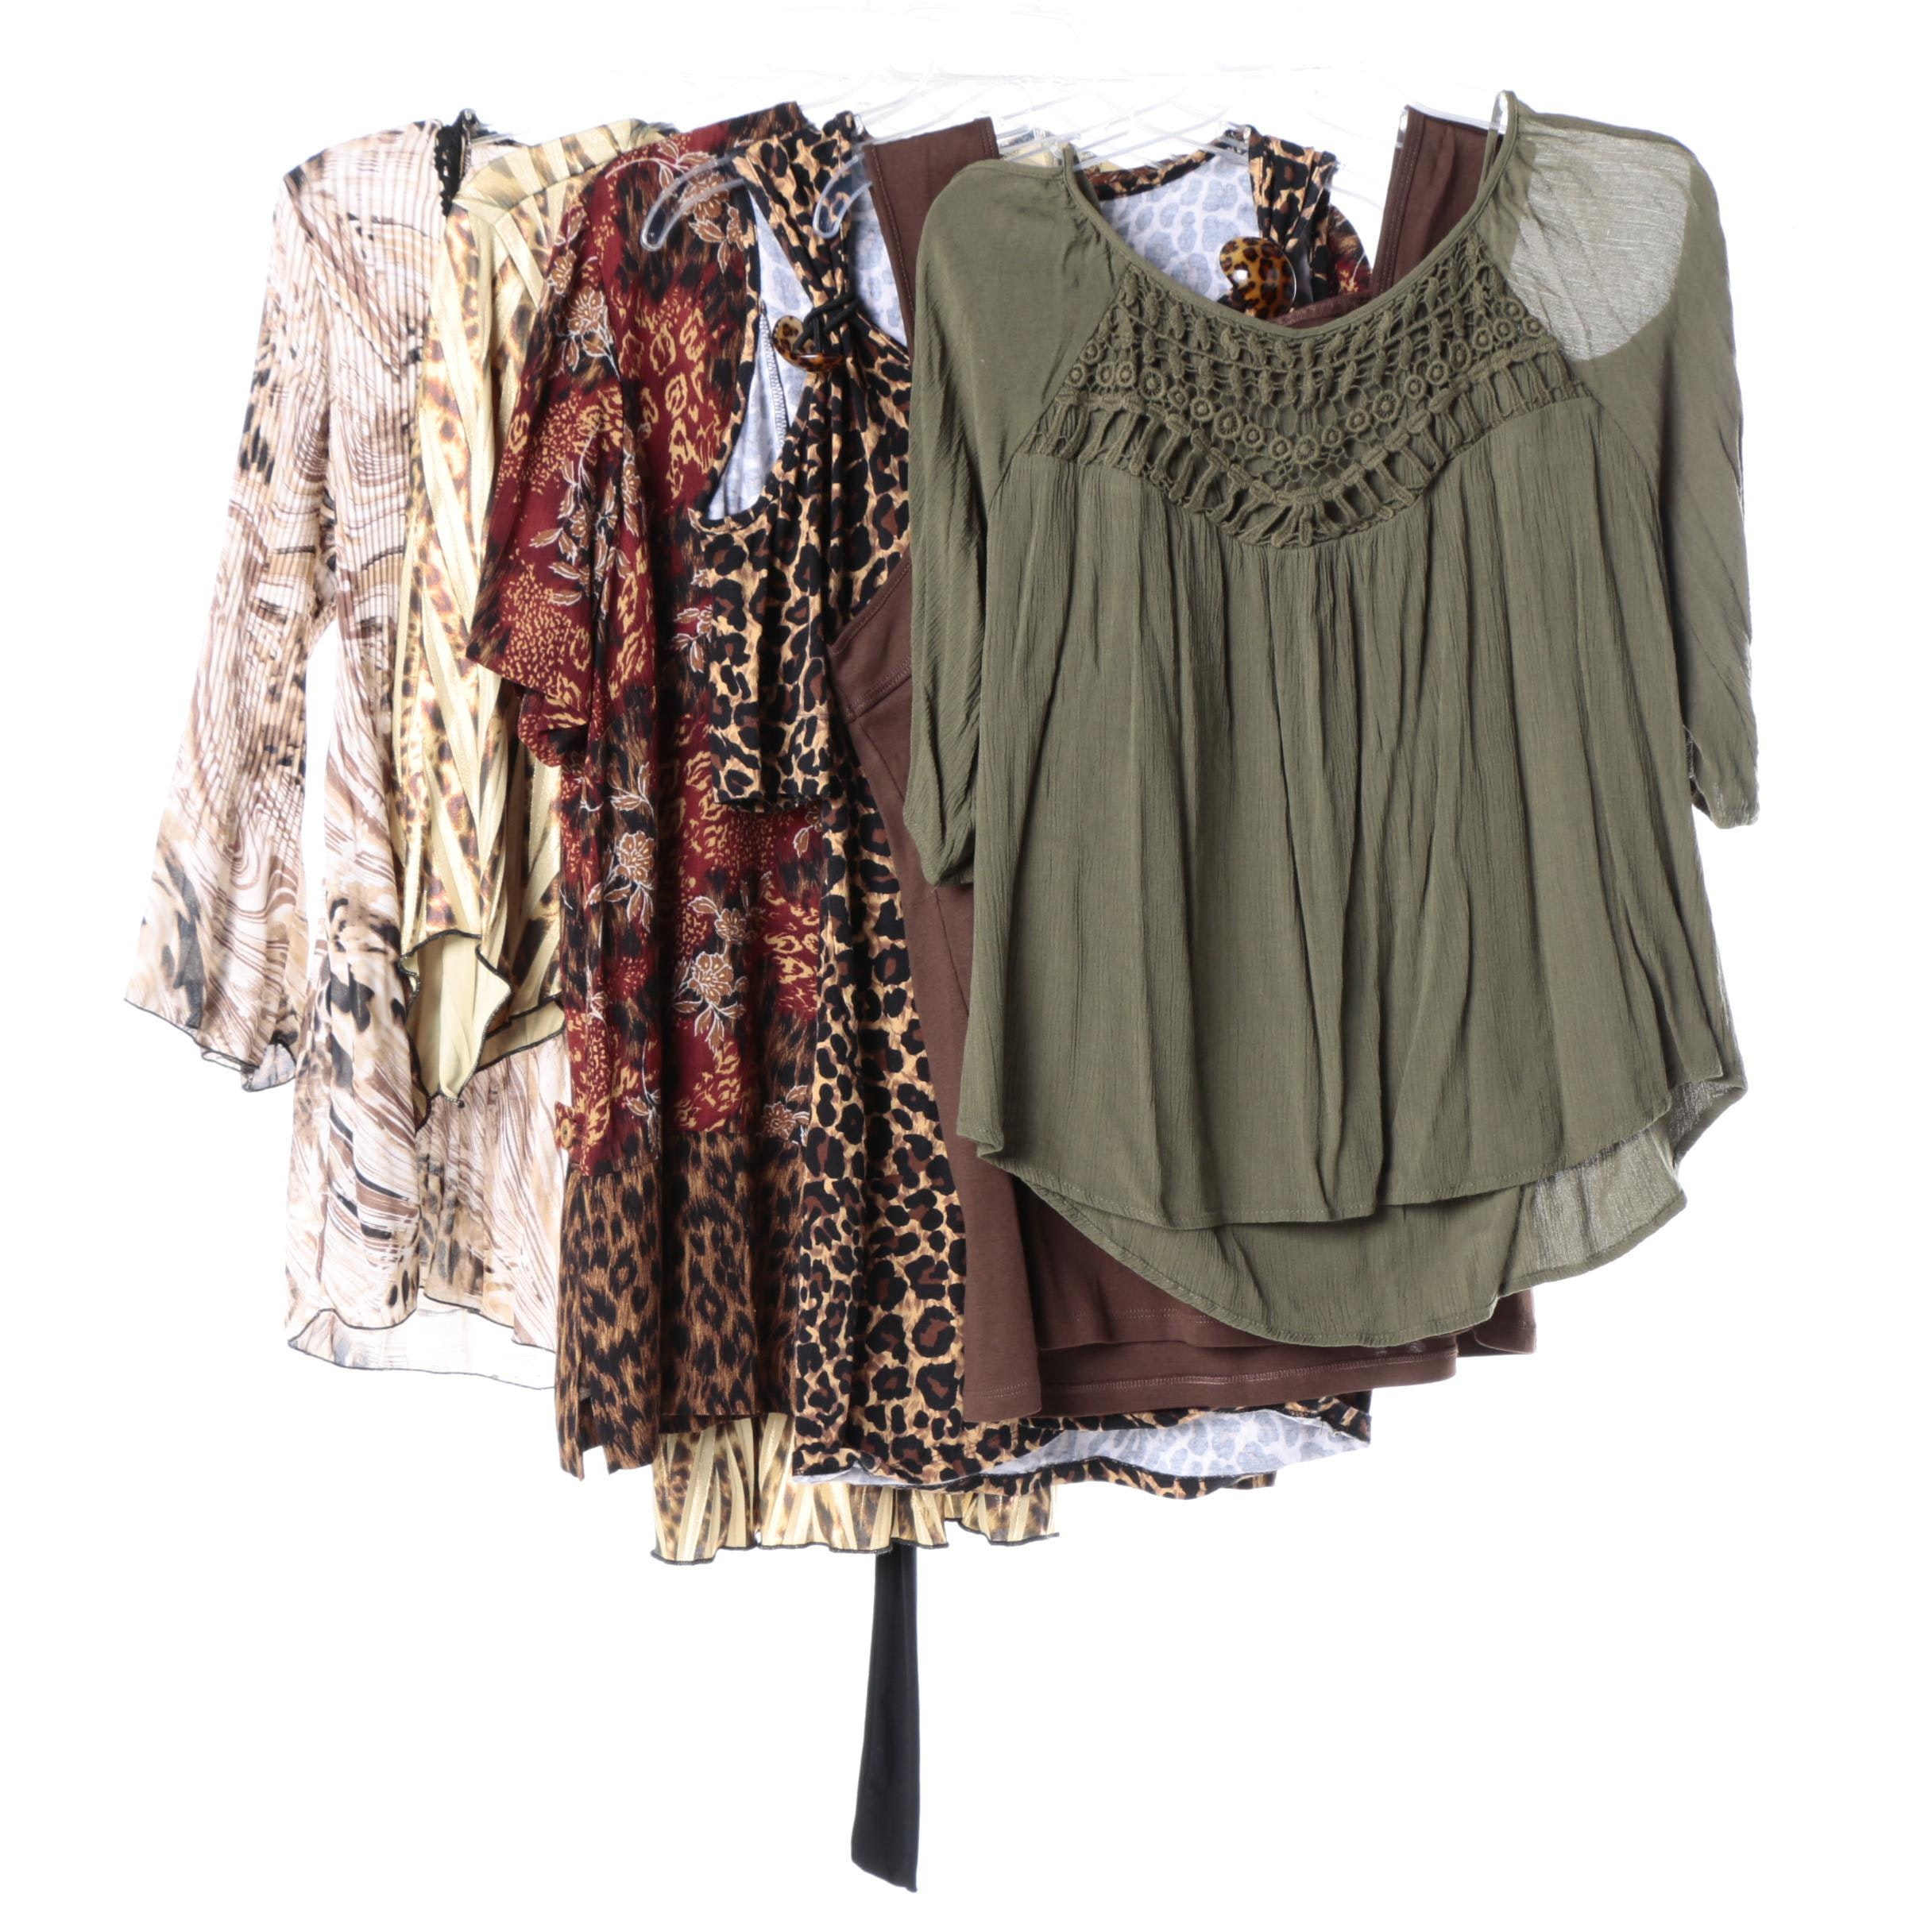 Women's Tops, Including Requirements